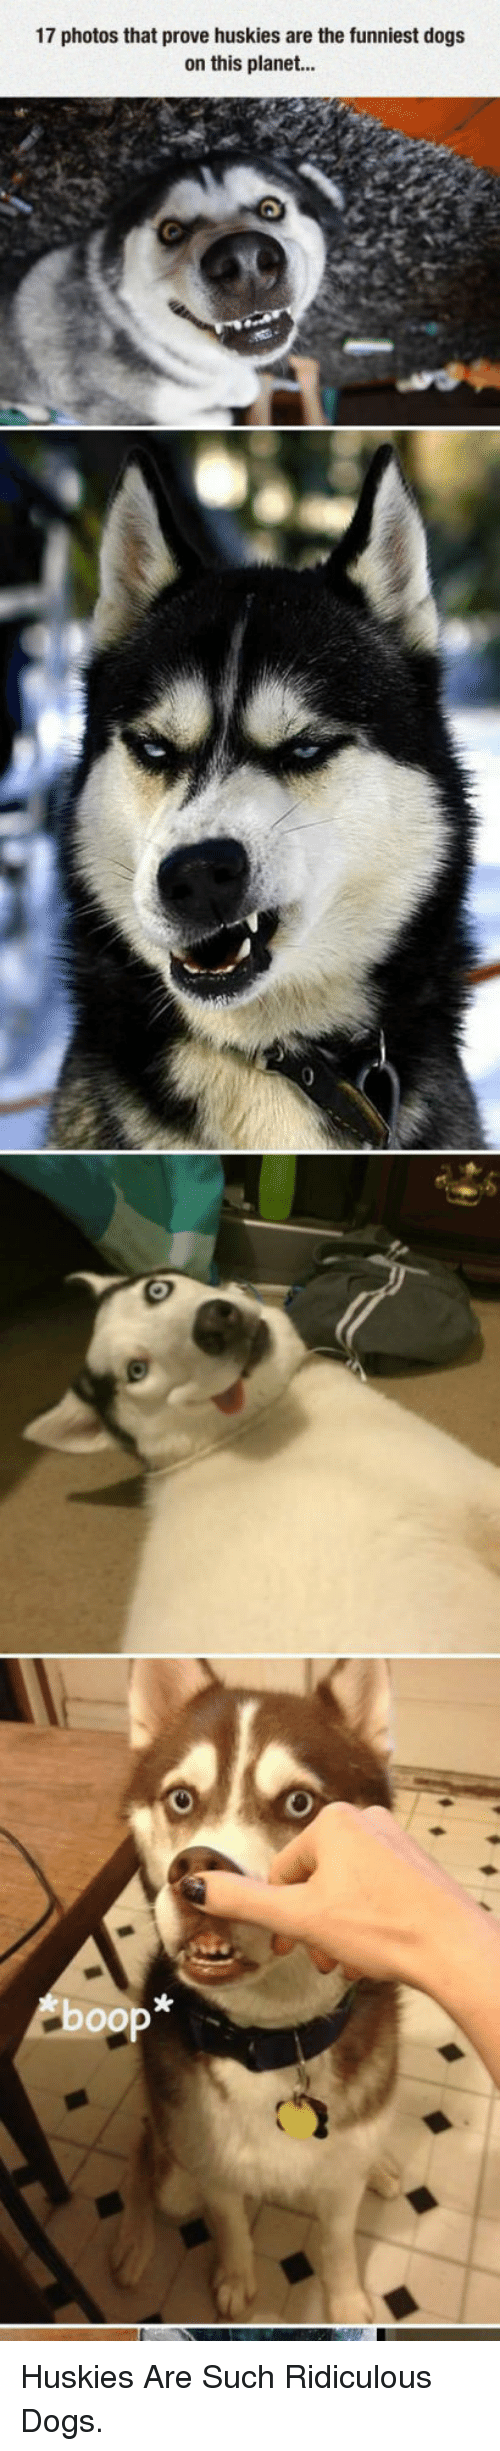 Dogs: 17 photos that prove huskies are the funniest dogs  on this planet. <p>Huskies Are Such Ridiculous Dogs.</p>